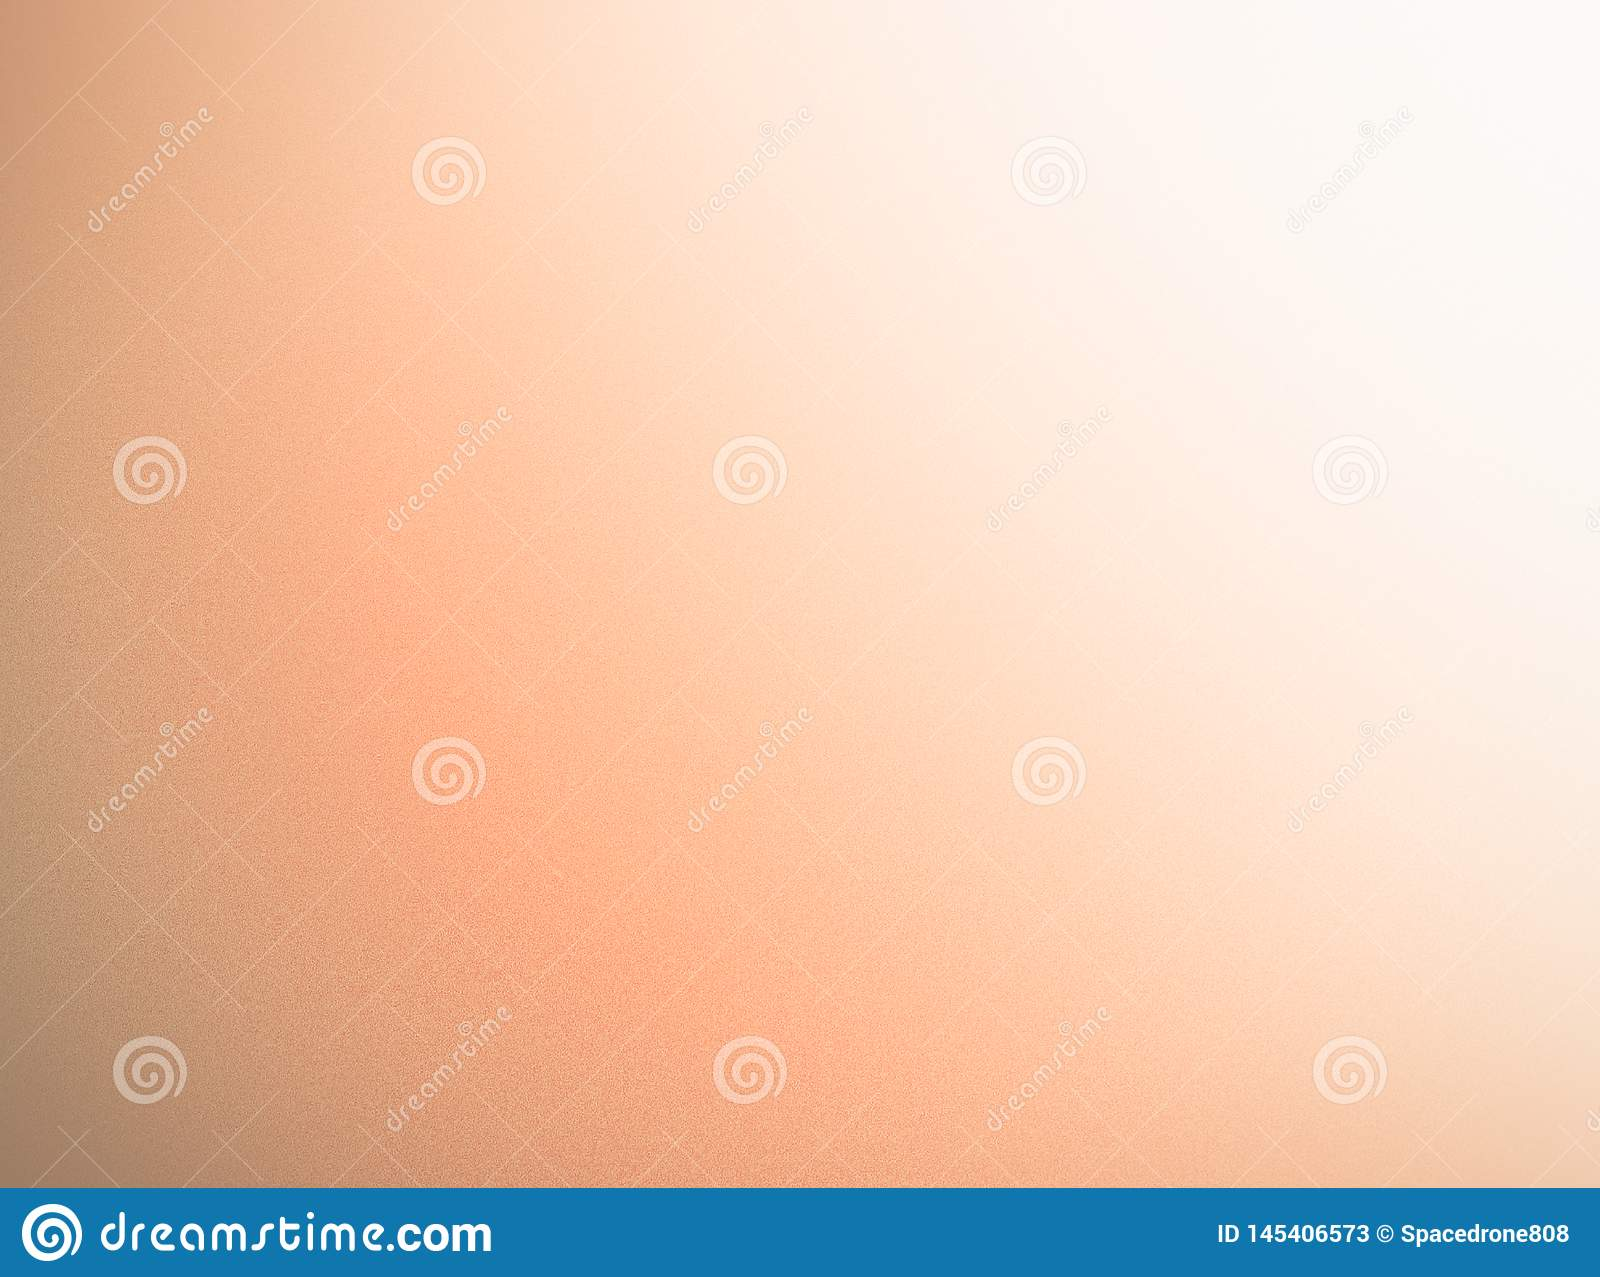 Orange noise with light leak texture background hd